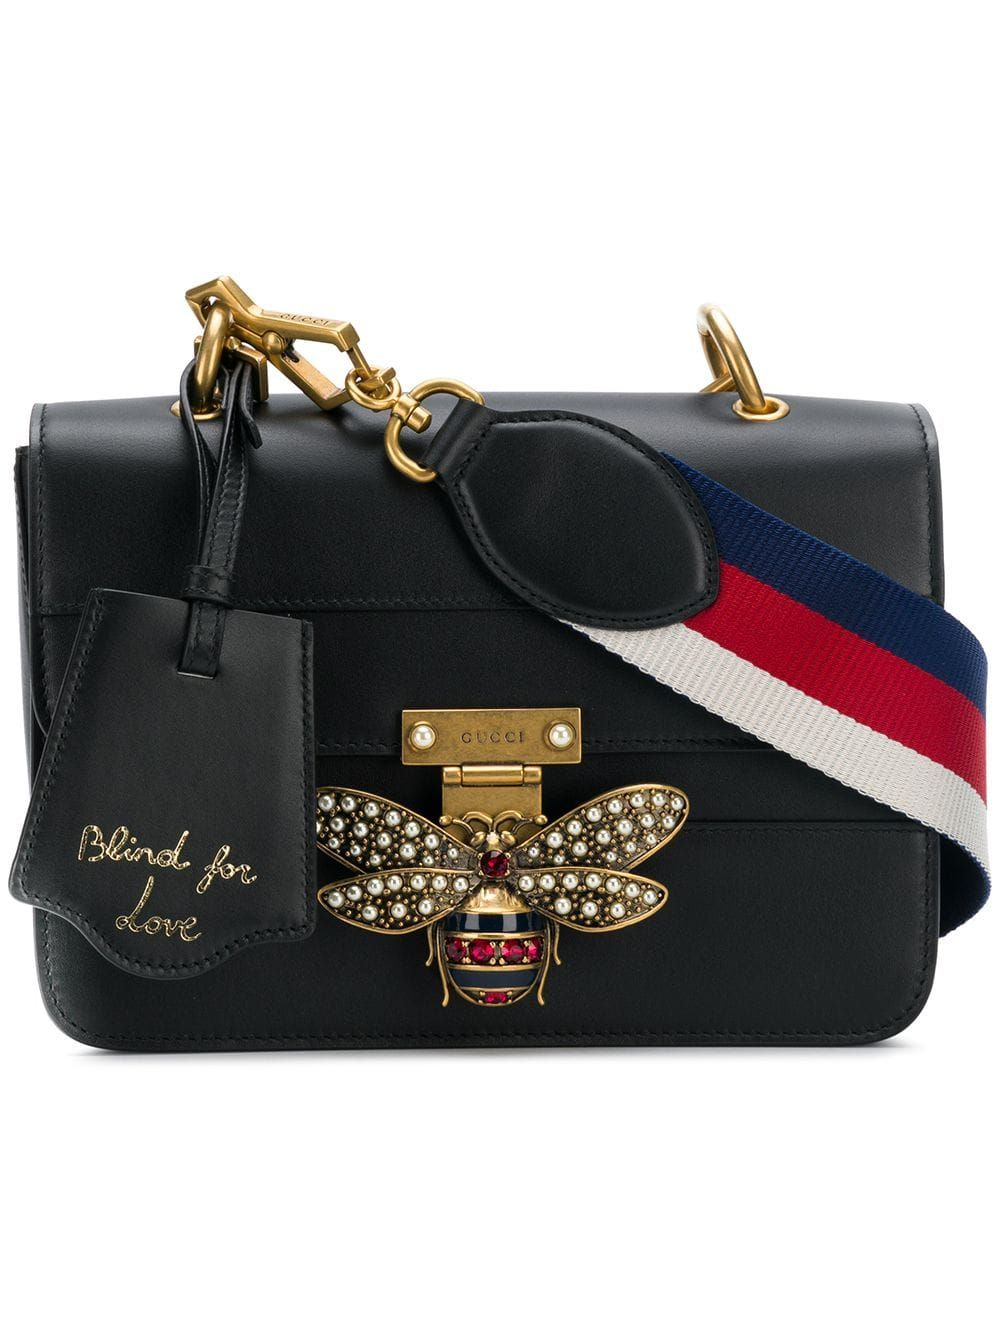 a305859d0 Gucci Bee Logo Embellished Bag in 2019 | Products | Gucci bee bag ...